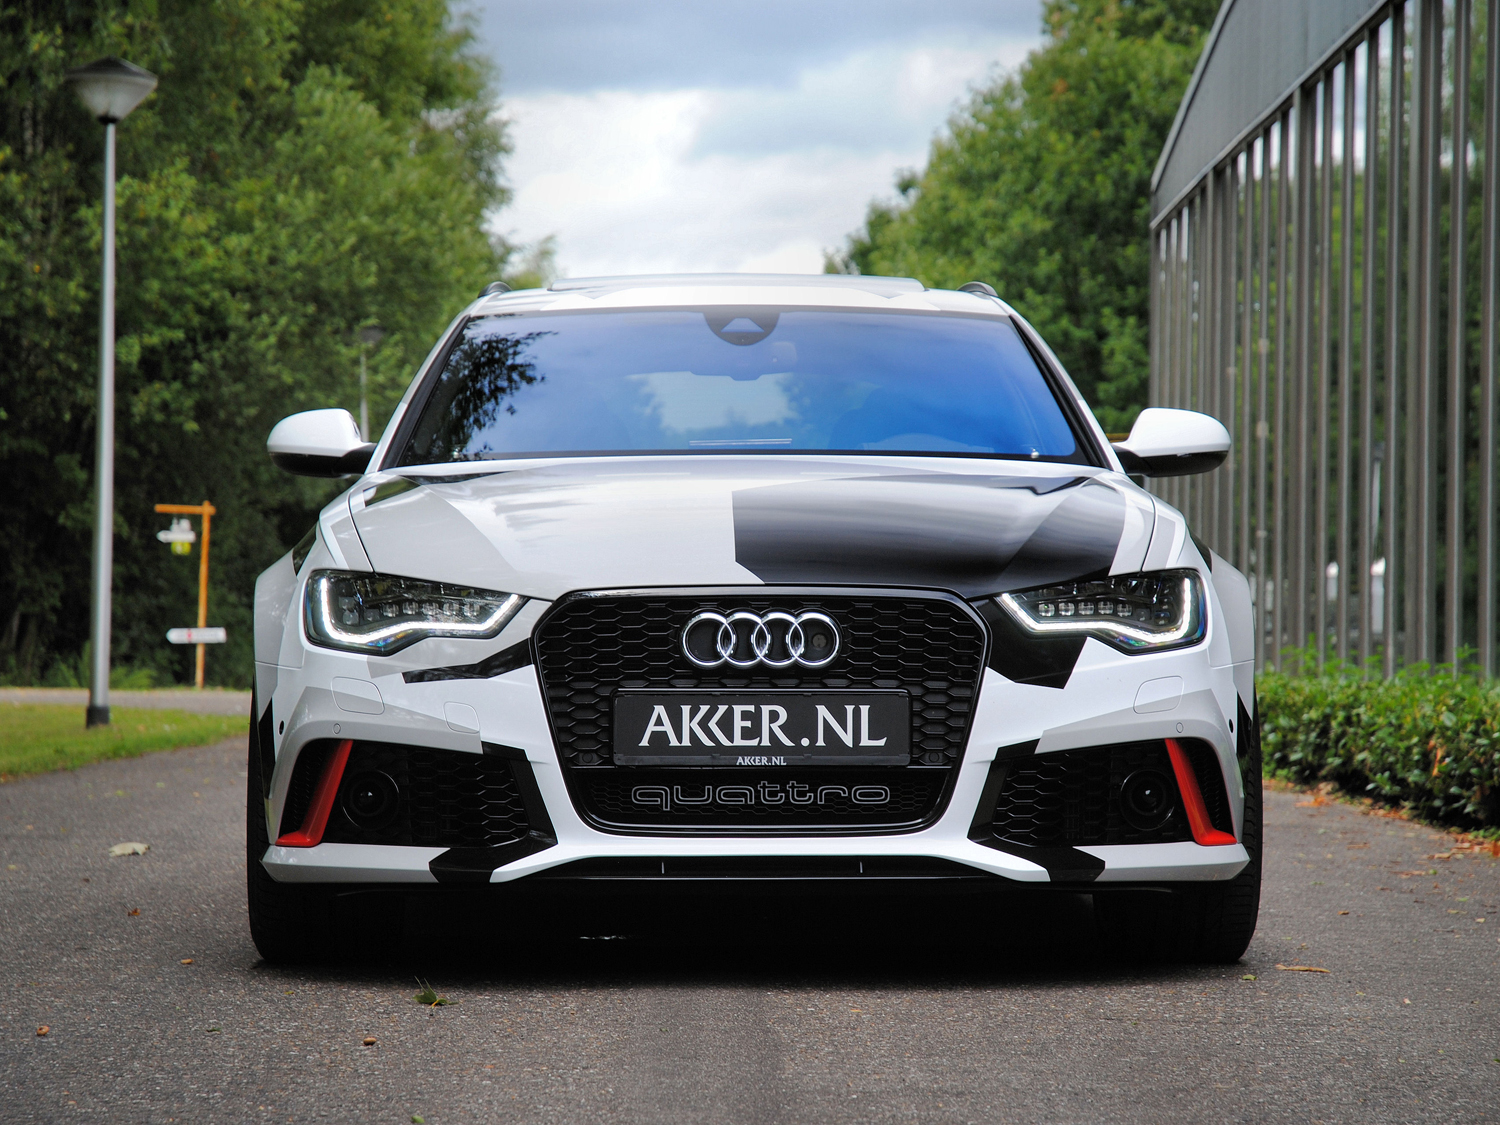 Exact copy of Jon Olsson's RS6 is driving around in the Netherlands!